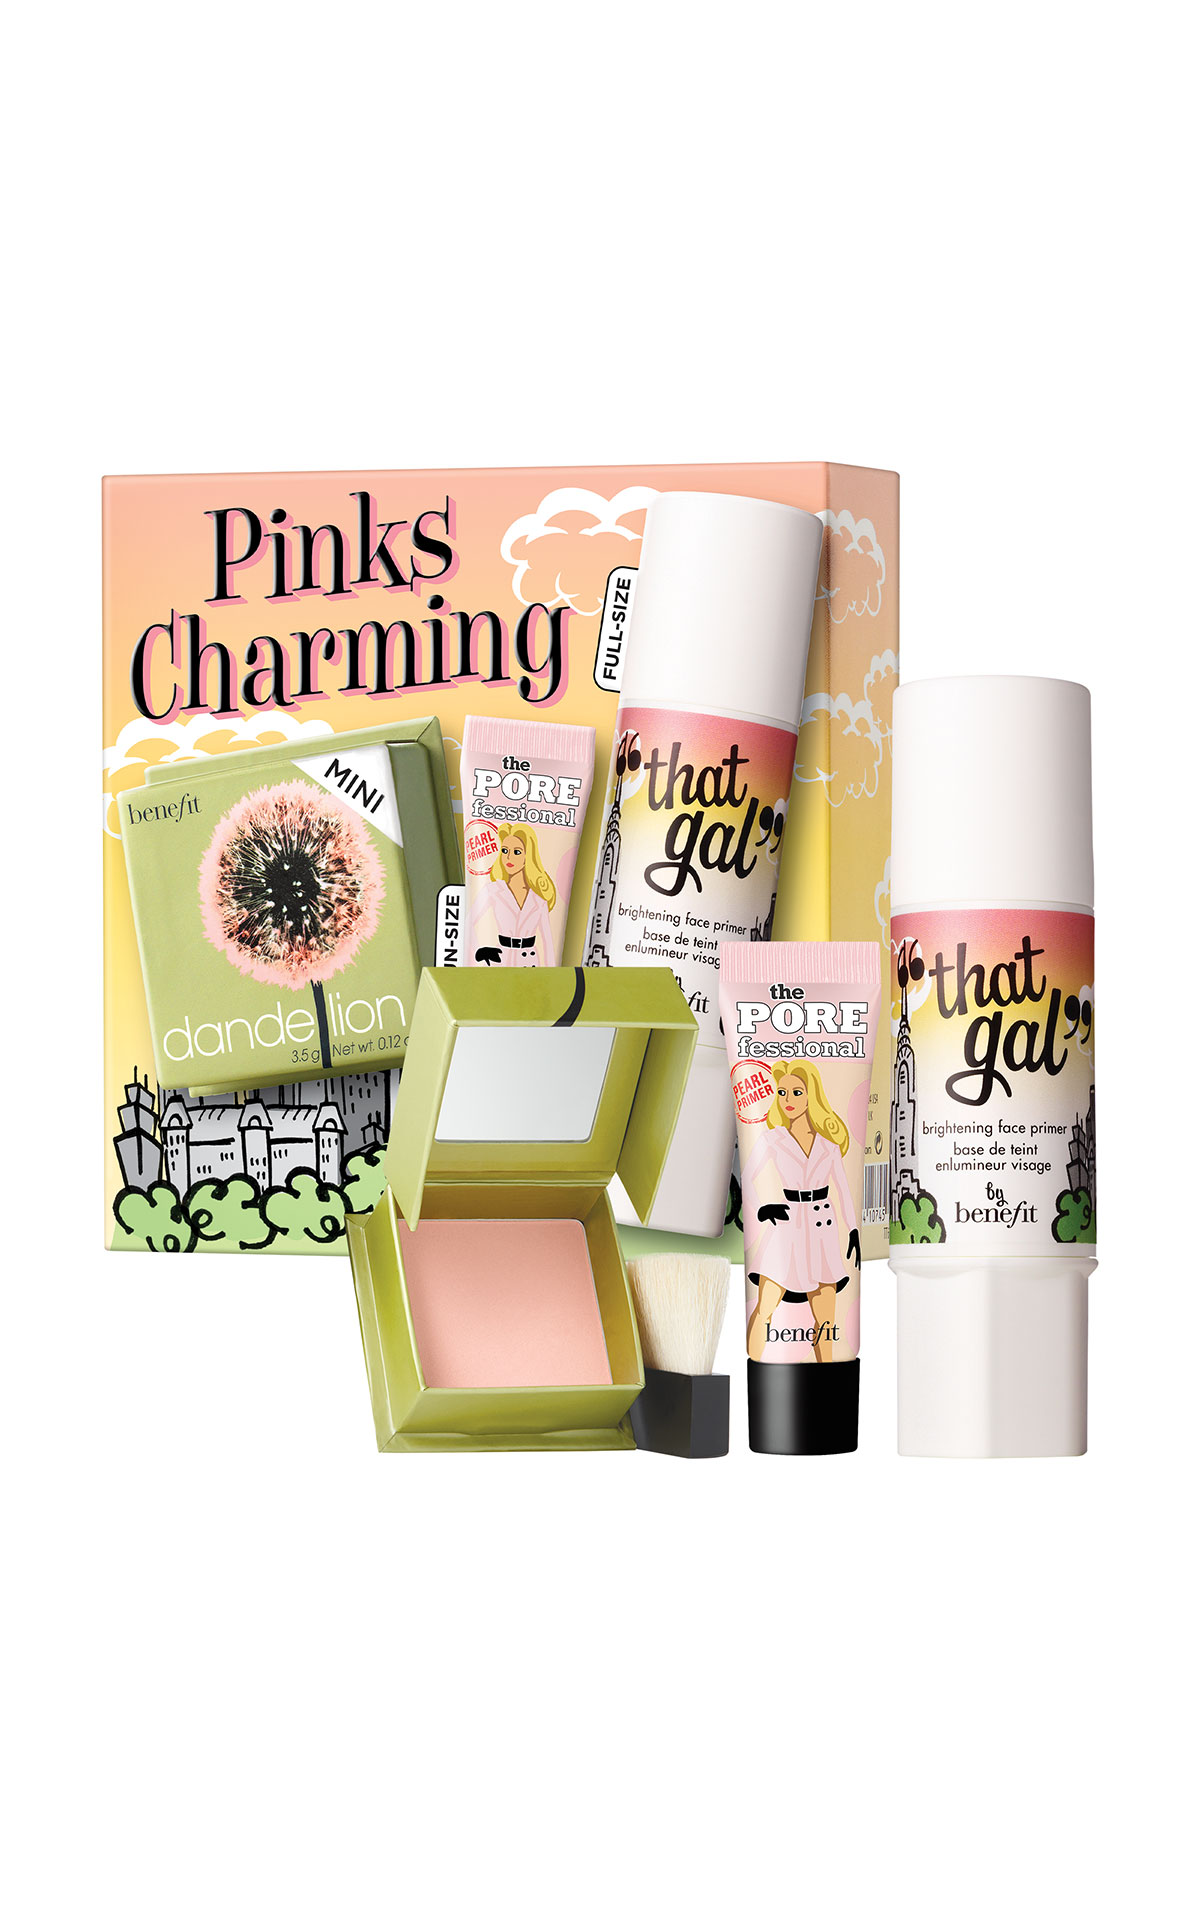 Benefit Cosmetics Pinks Charming primer and blush set from Bicester Village